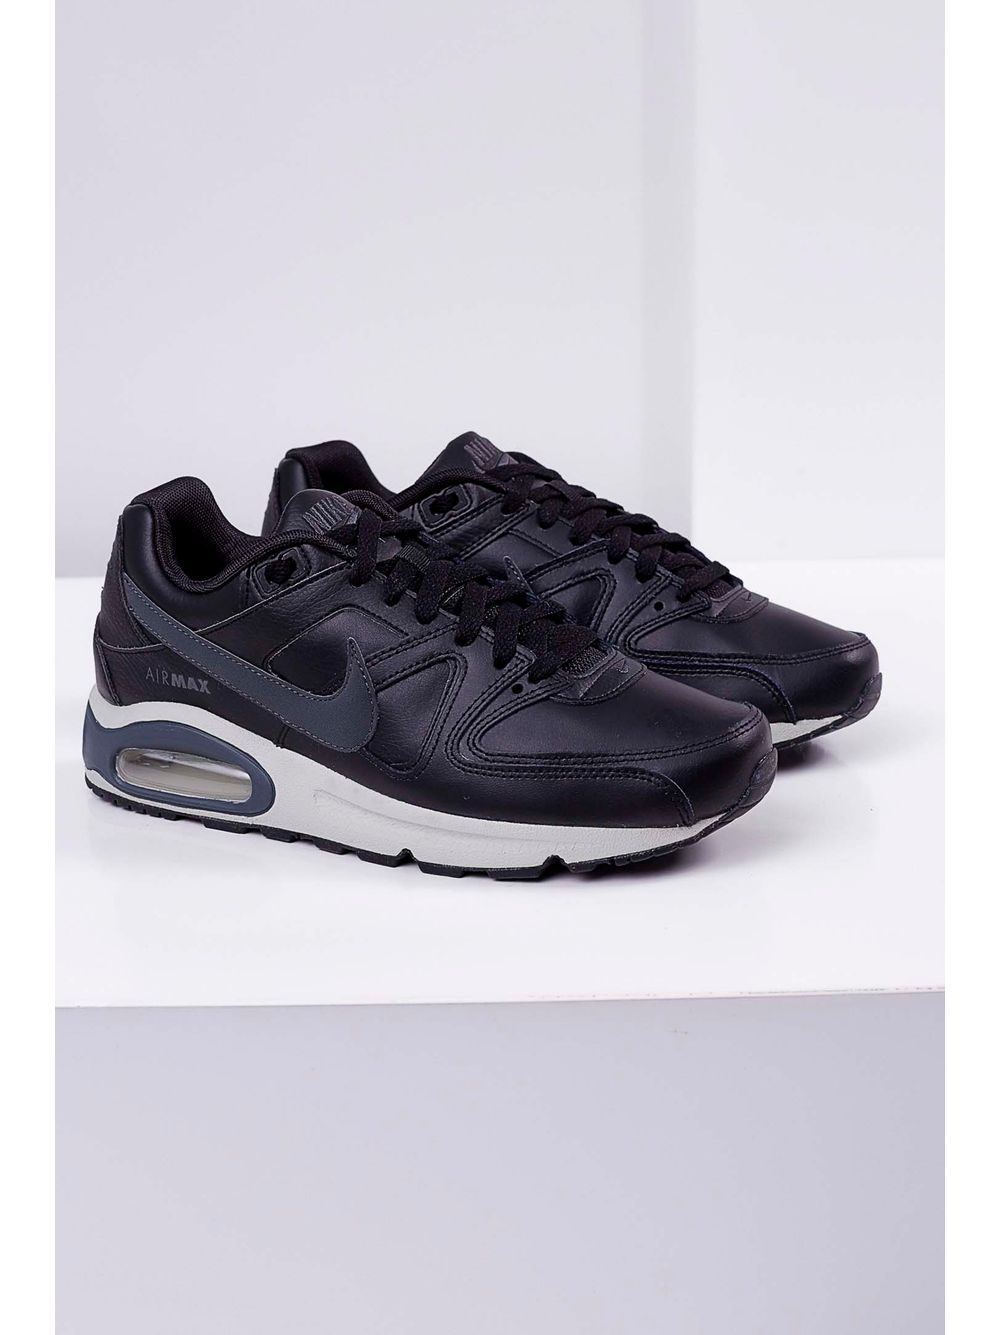 Tênis Nike Air Max Command Leather Shoe Preto - pittol 59574ee33a65e